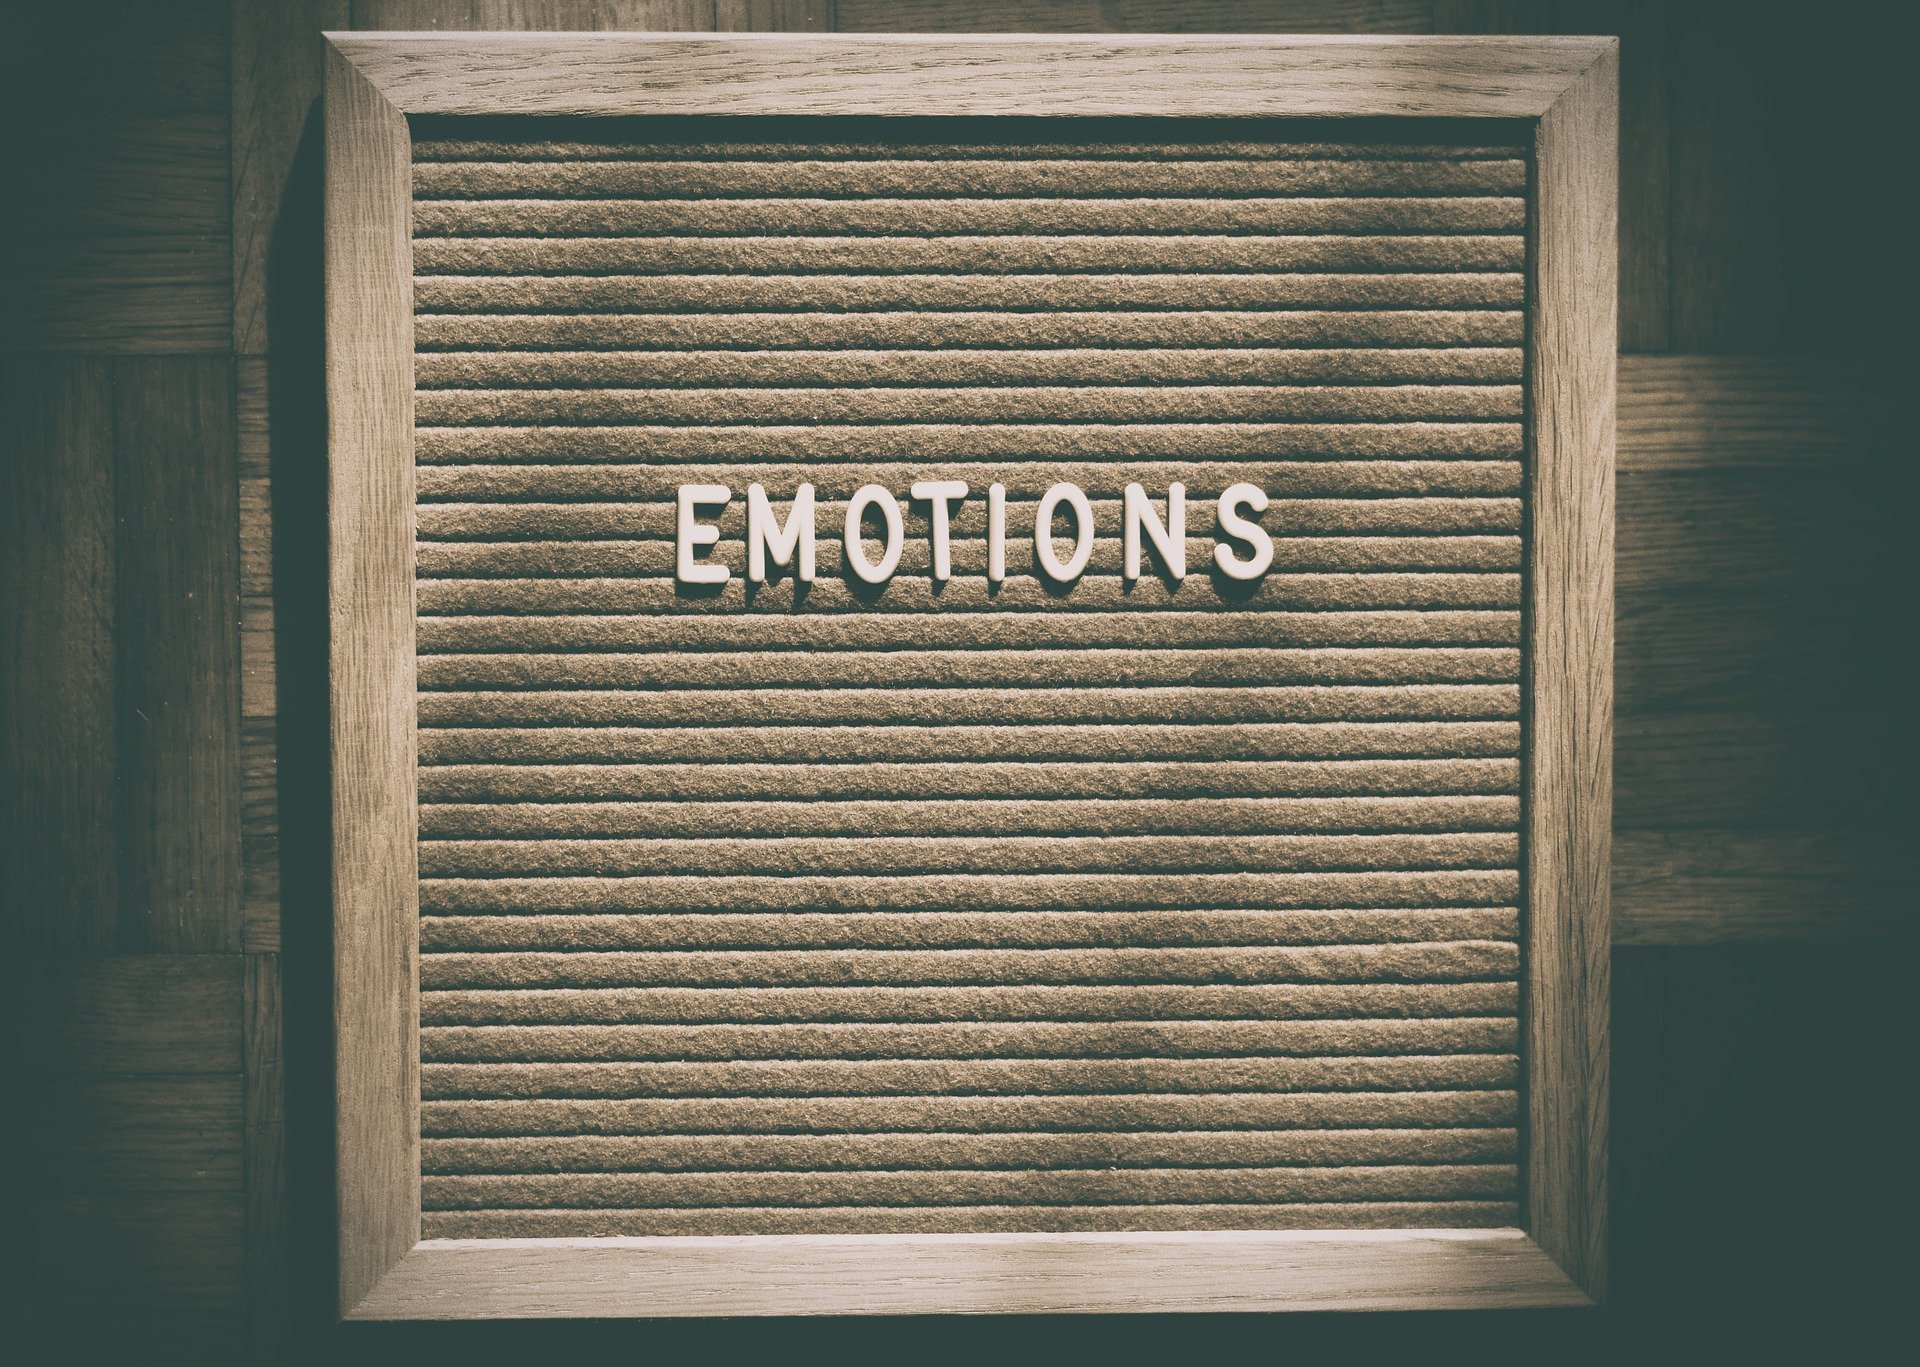 SIMPLE TECHNIQUE to Handle Tough Emotions